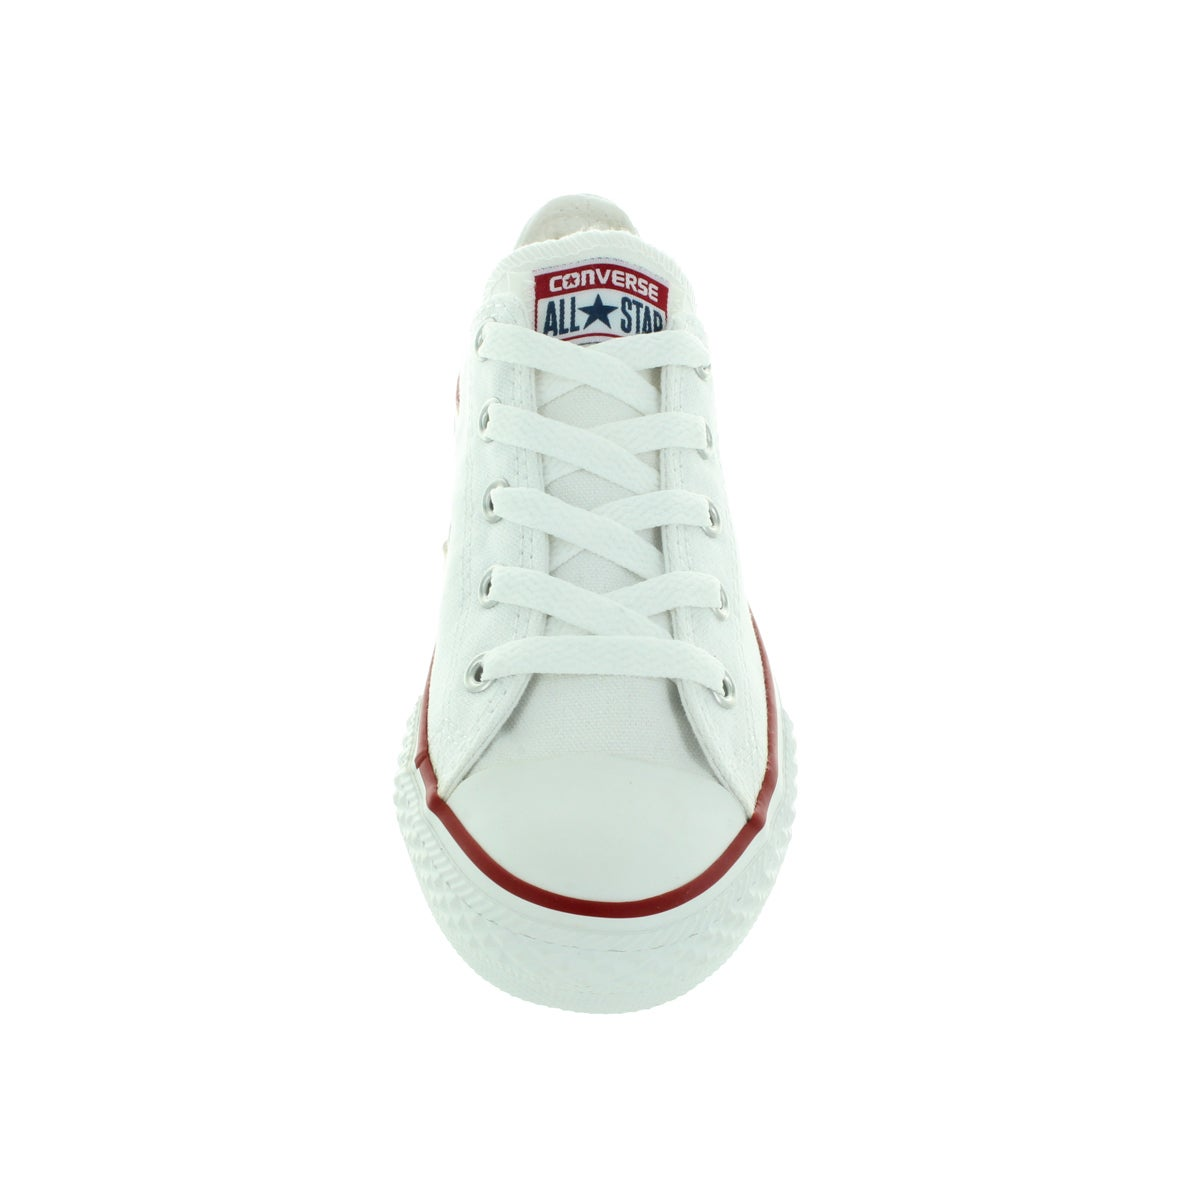 947d935bdfc Shop Converse Kid's Youth Chuck Taylor All Star Optical White Basketball  Shoe - Free Shipping On Orders Over $45 - Overstock - 12321476